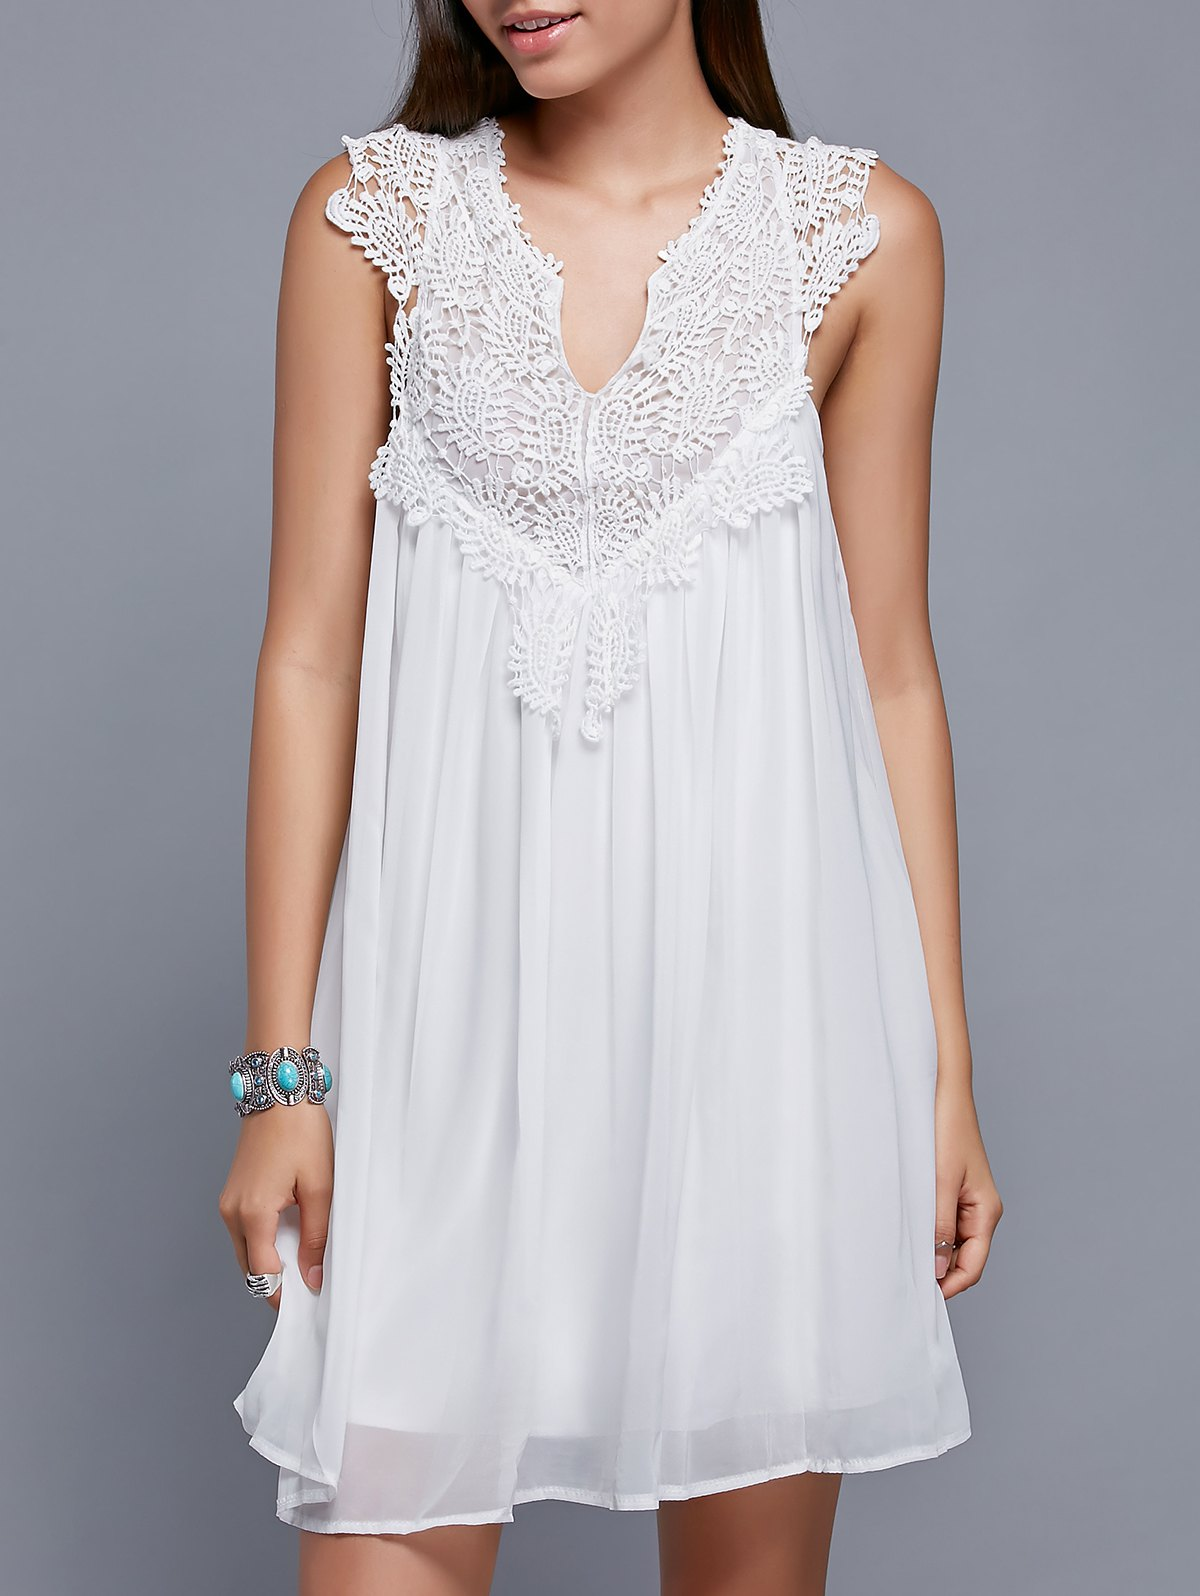 V Neck Sleeveless Cut Out Chiffon Dress - WHITE 2XL